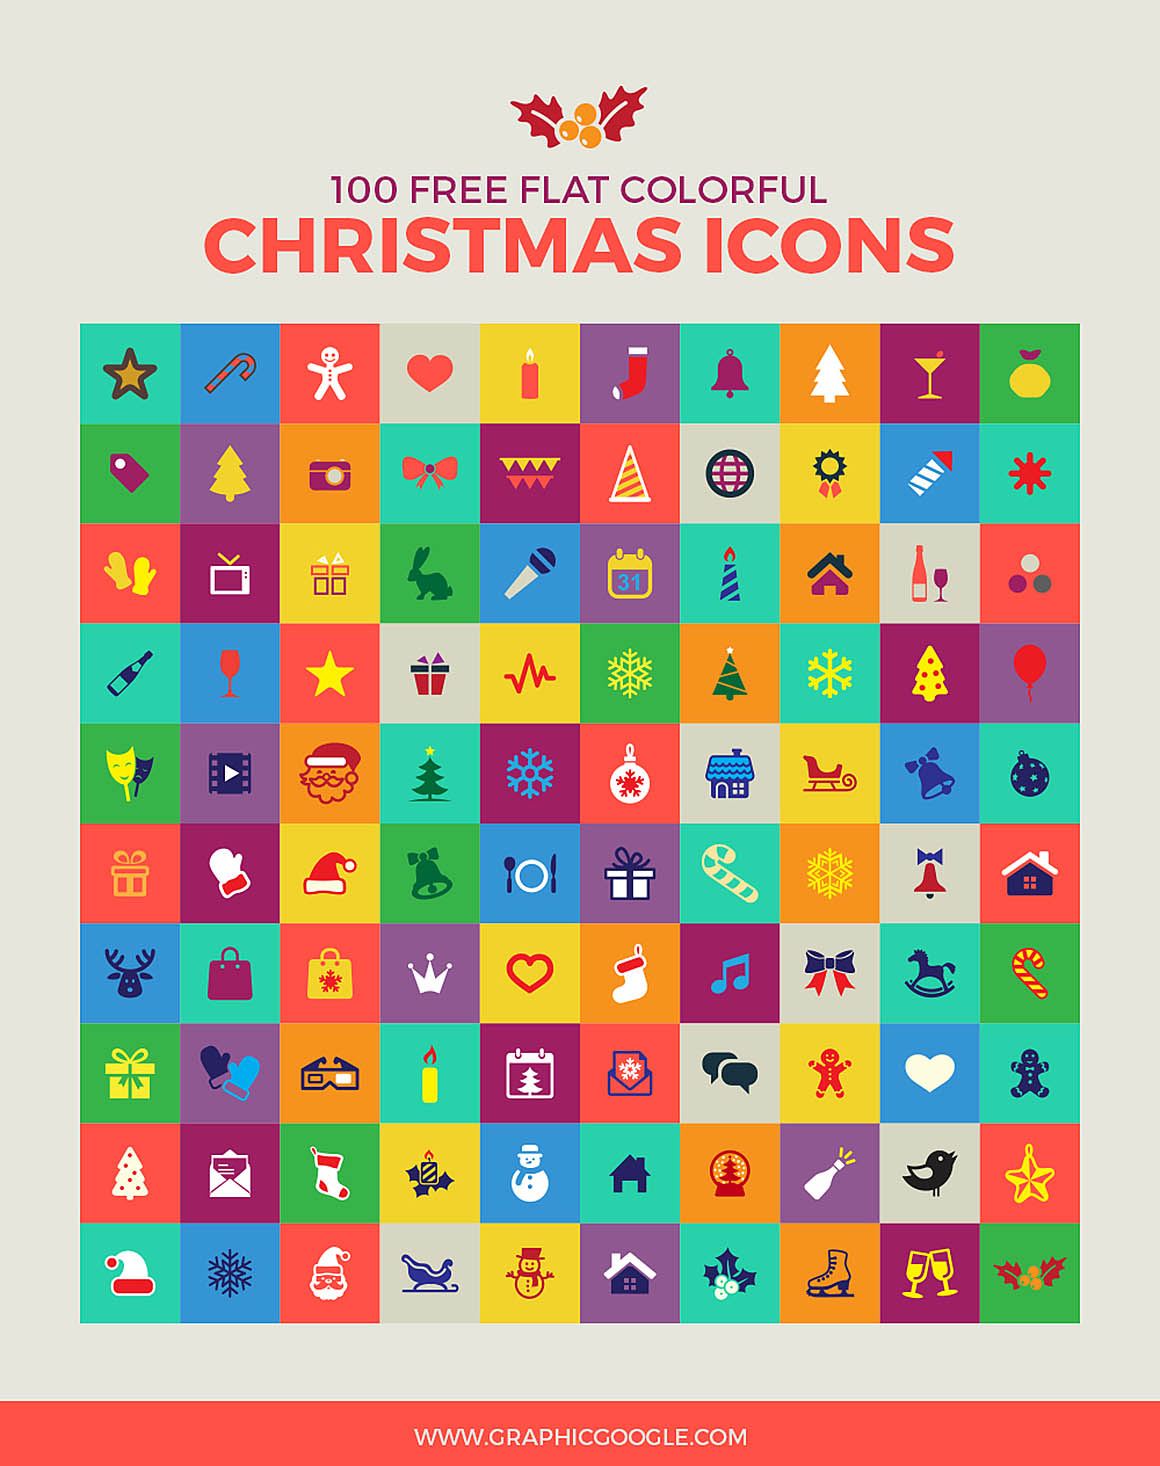 100-free-flat-colorful-christmas-icons2